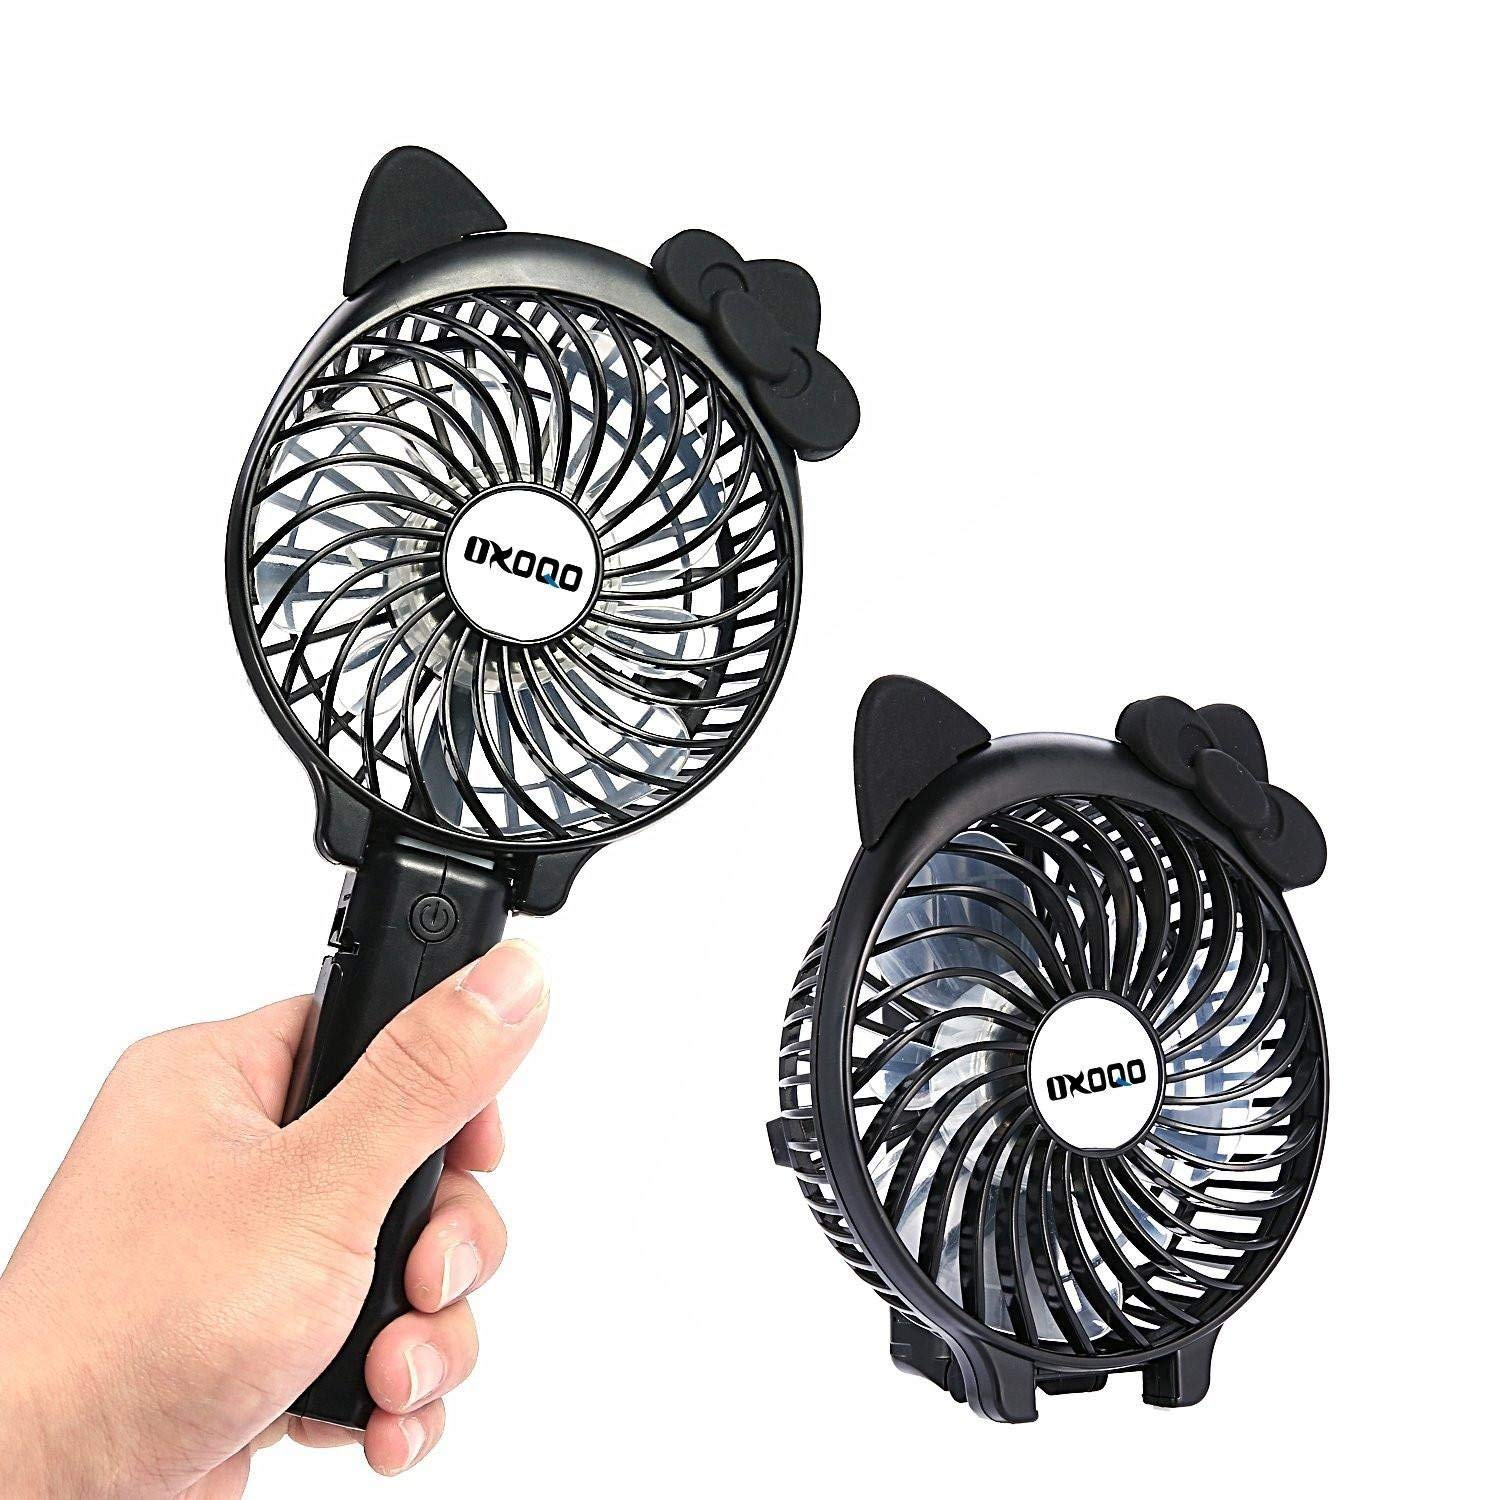 KOBWA Portable Mini Fan, Folding Personal Handheld Fan, Built-In 2500mAh Rechargeable Battery, Equipped With 3 Kinds of Strong Wind, Mini Size for Indoor Home, Travel & Camping